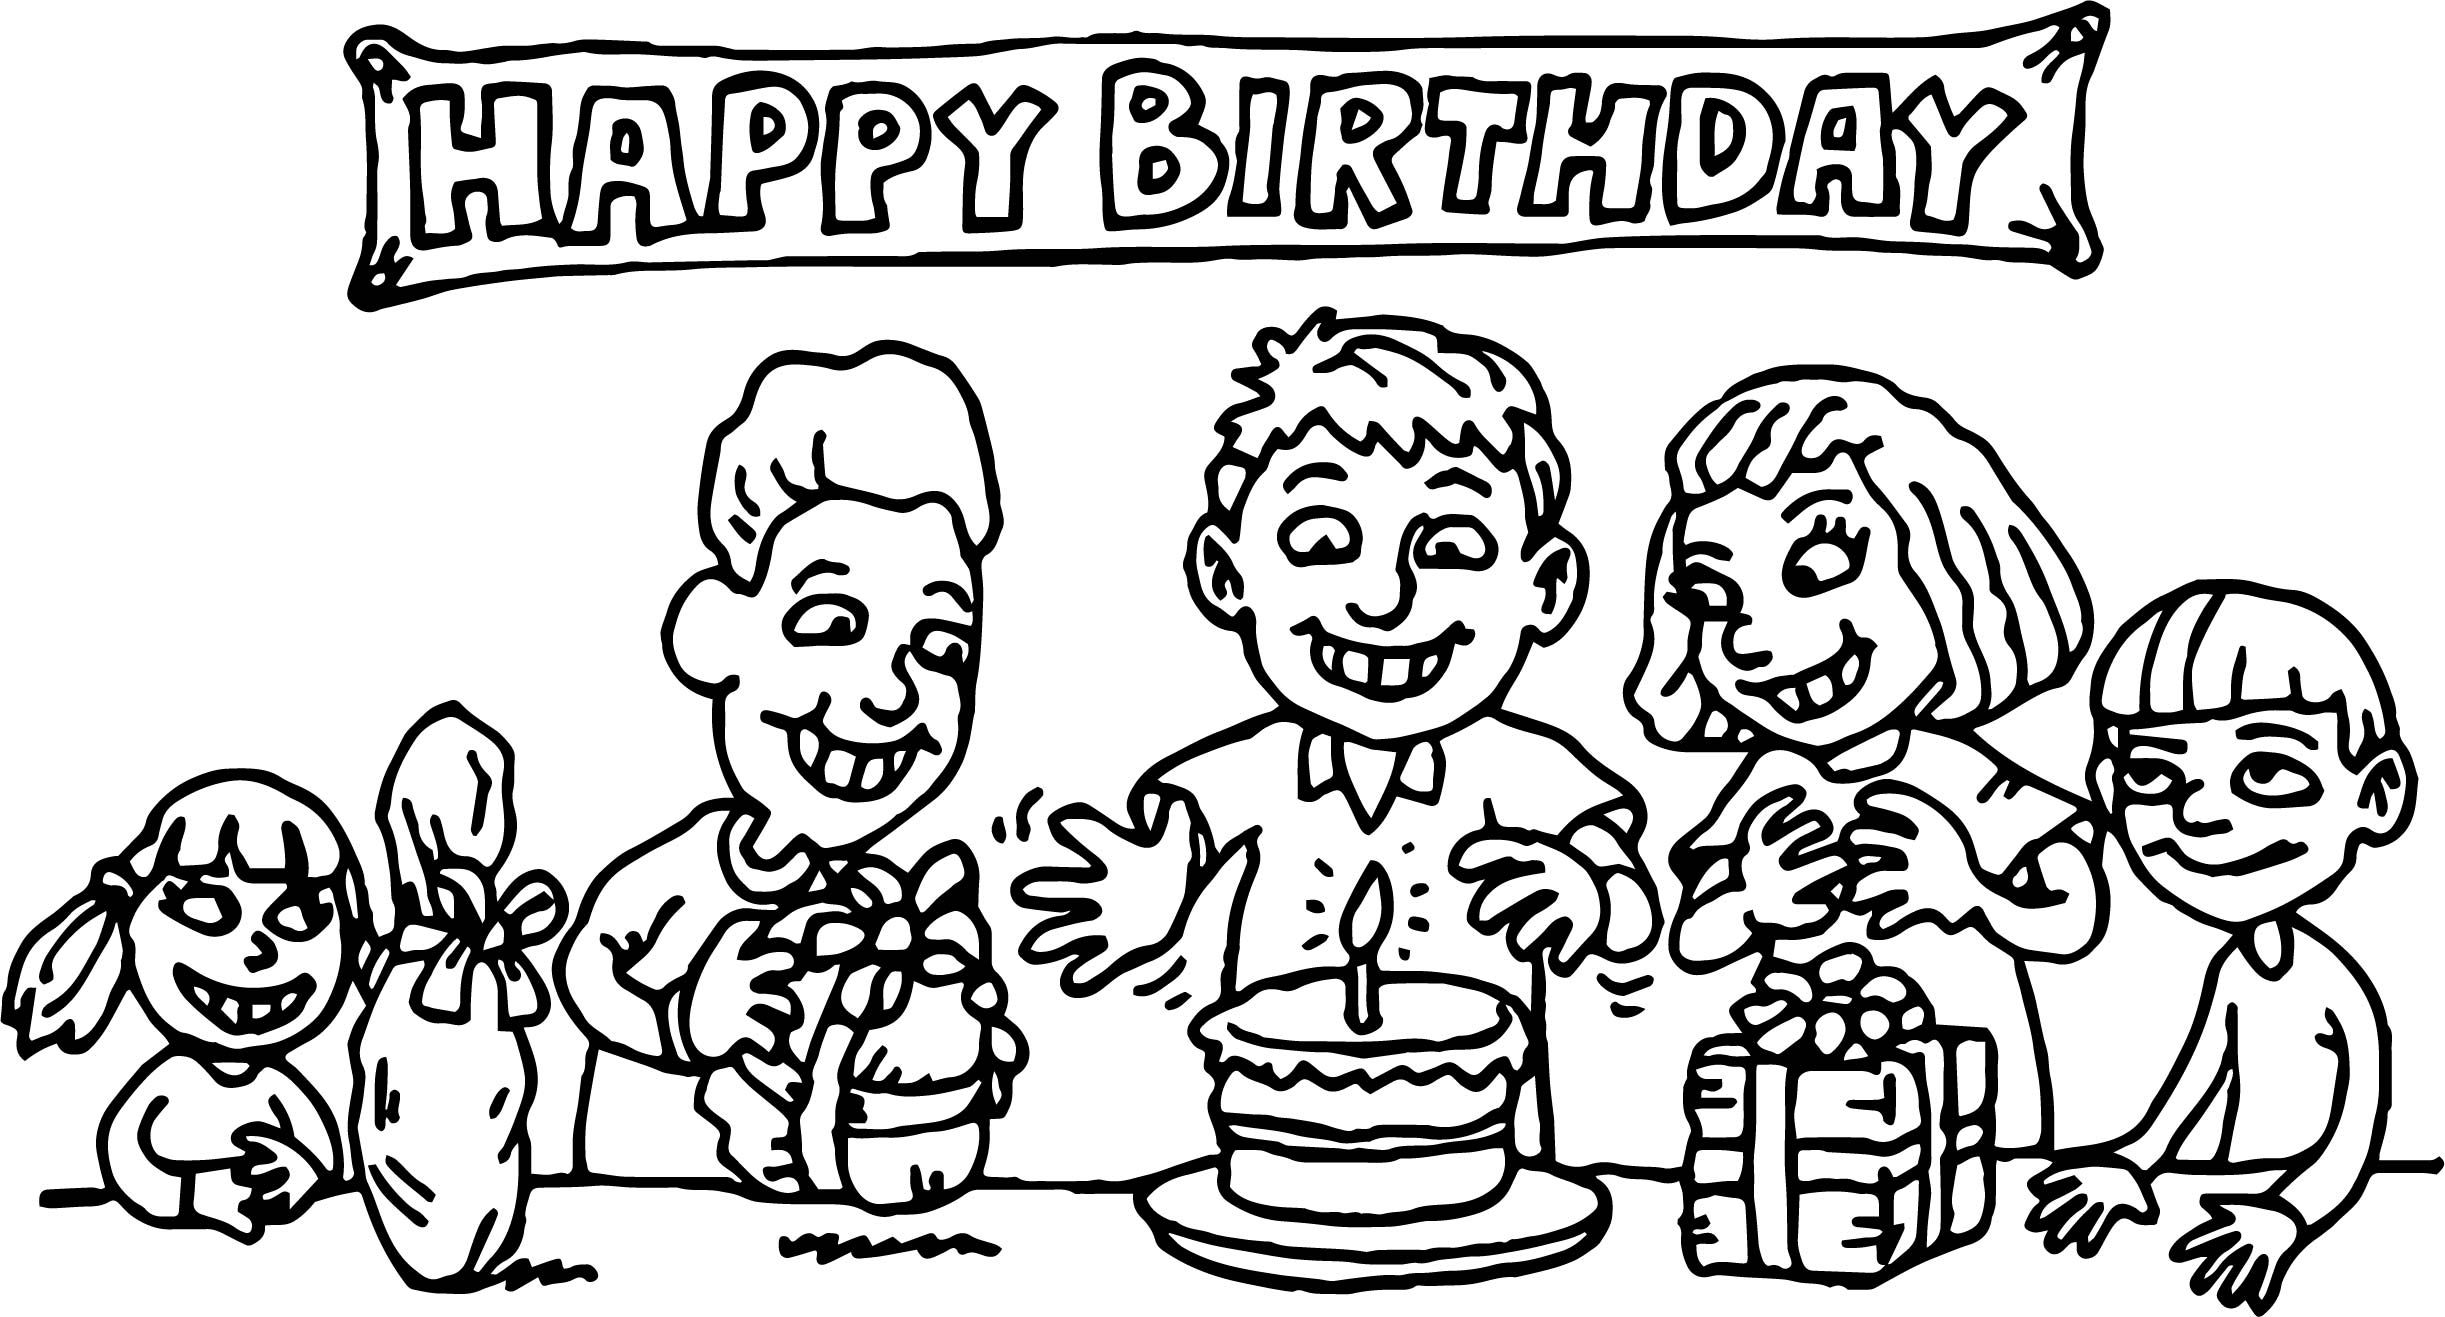 Cool Kids Birthday Party Coloring Page Fall Coloring Pages Coloring Sheets For Kids Kids Birthday Party